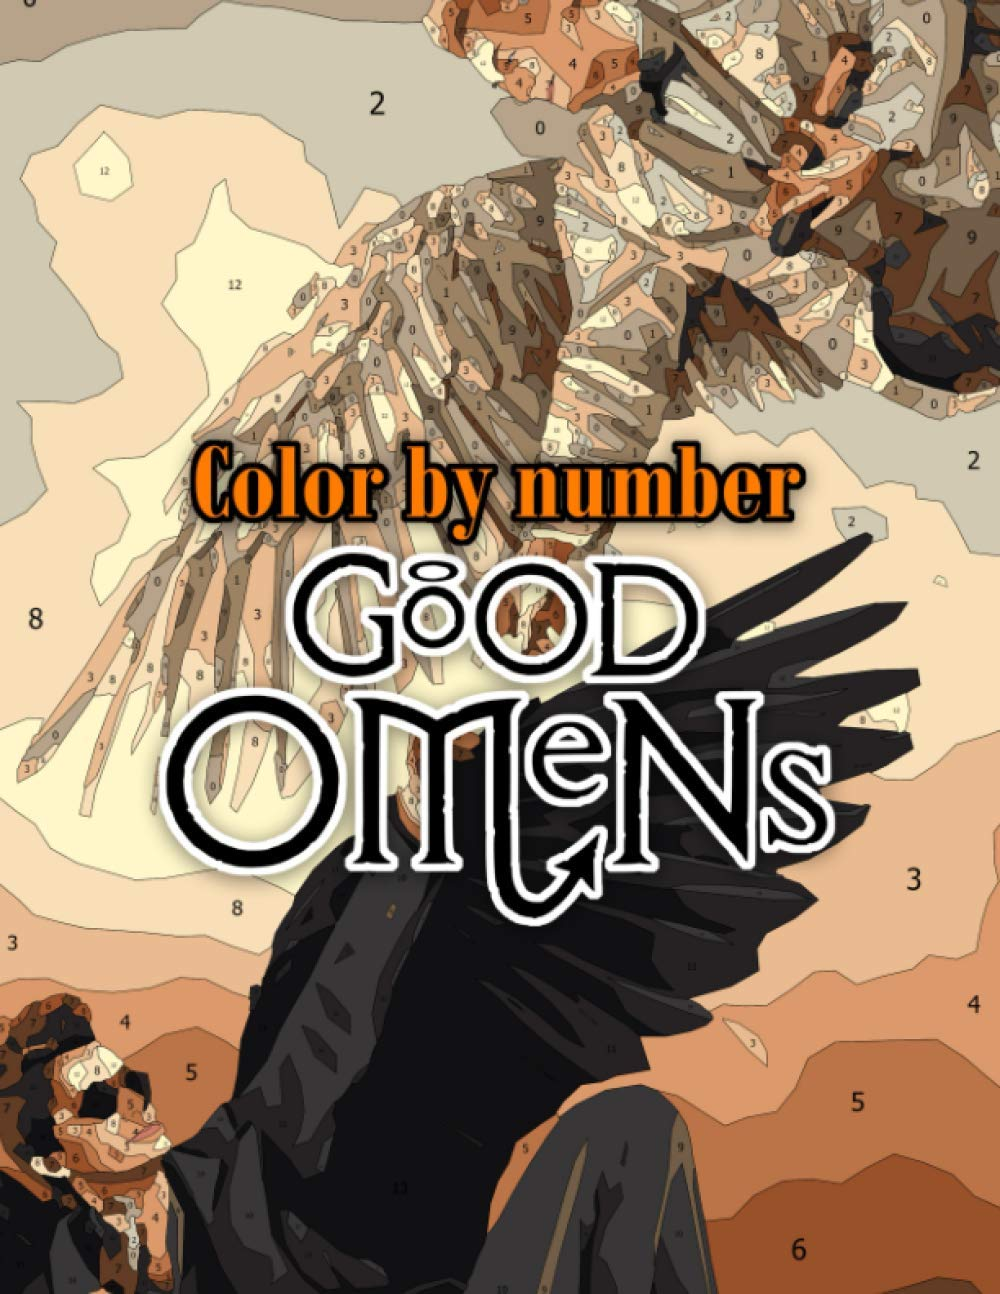 Good omens Color by Number: Good omens Coloring Book An Adult Coloring Book For Stress-Relief